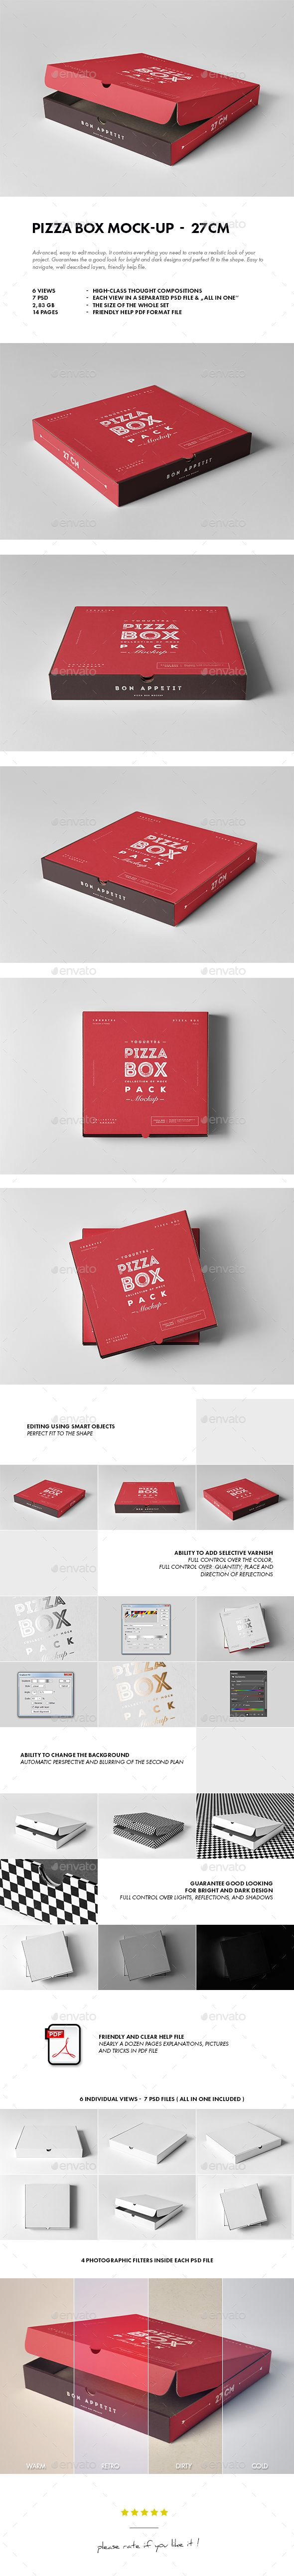 27 Pizza Box Mockup — Photoshop PSD #cardboard #packing • Download ➝ https://graphicriver.net/item/27-pizza-box-mockup/19513253?ref=pxcr